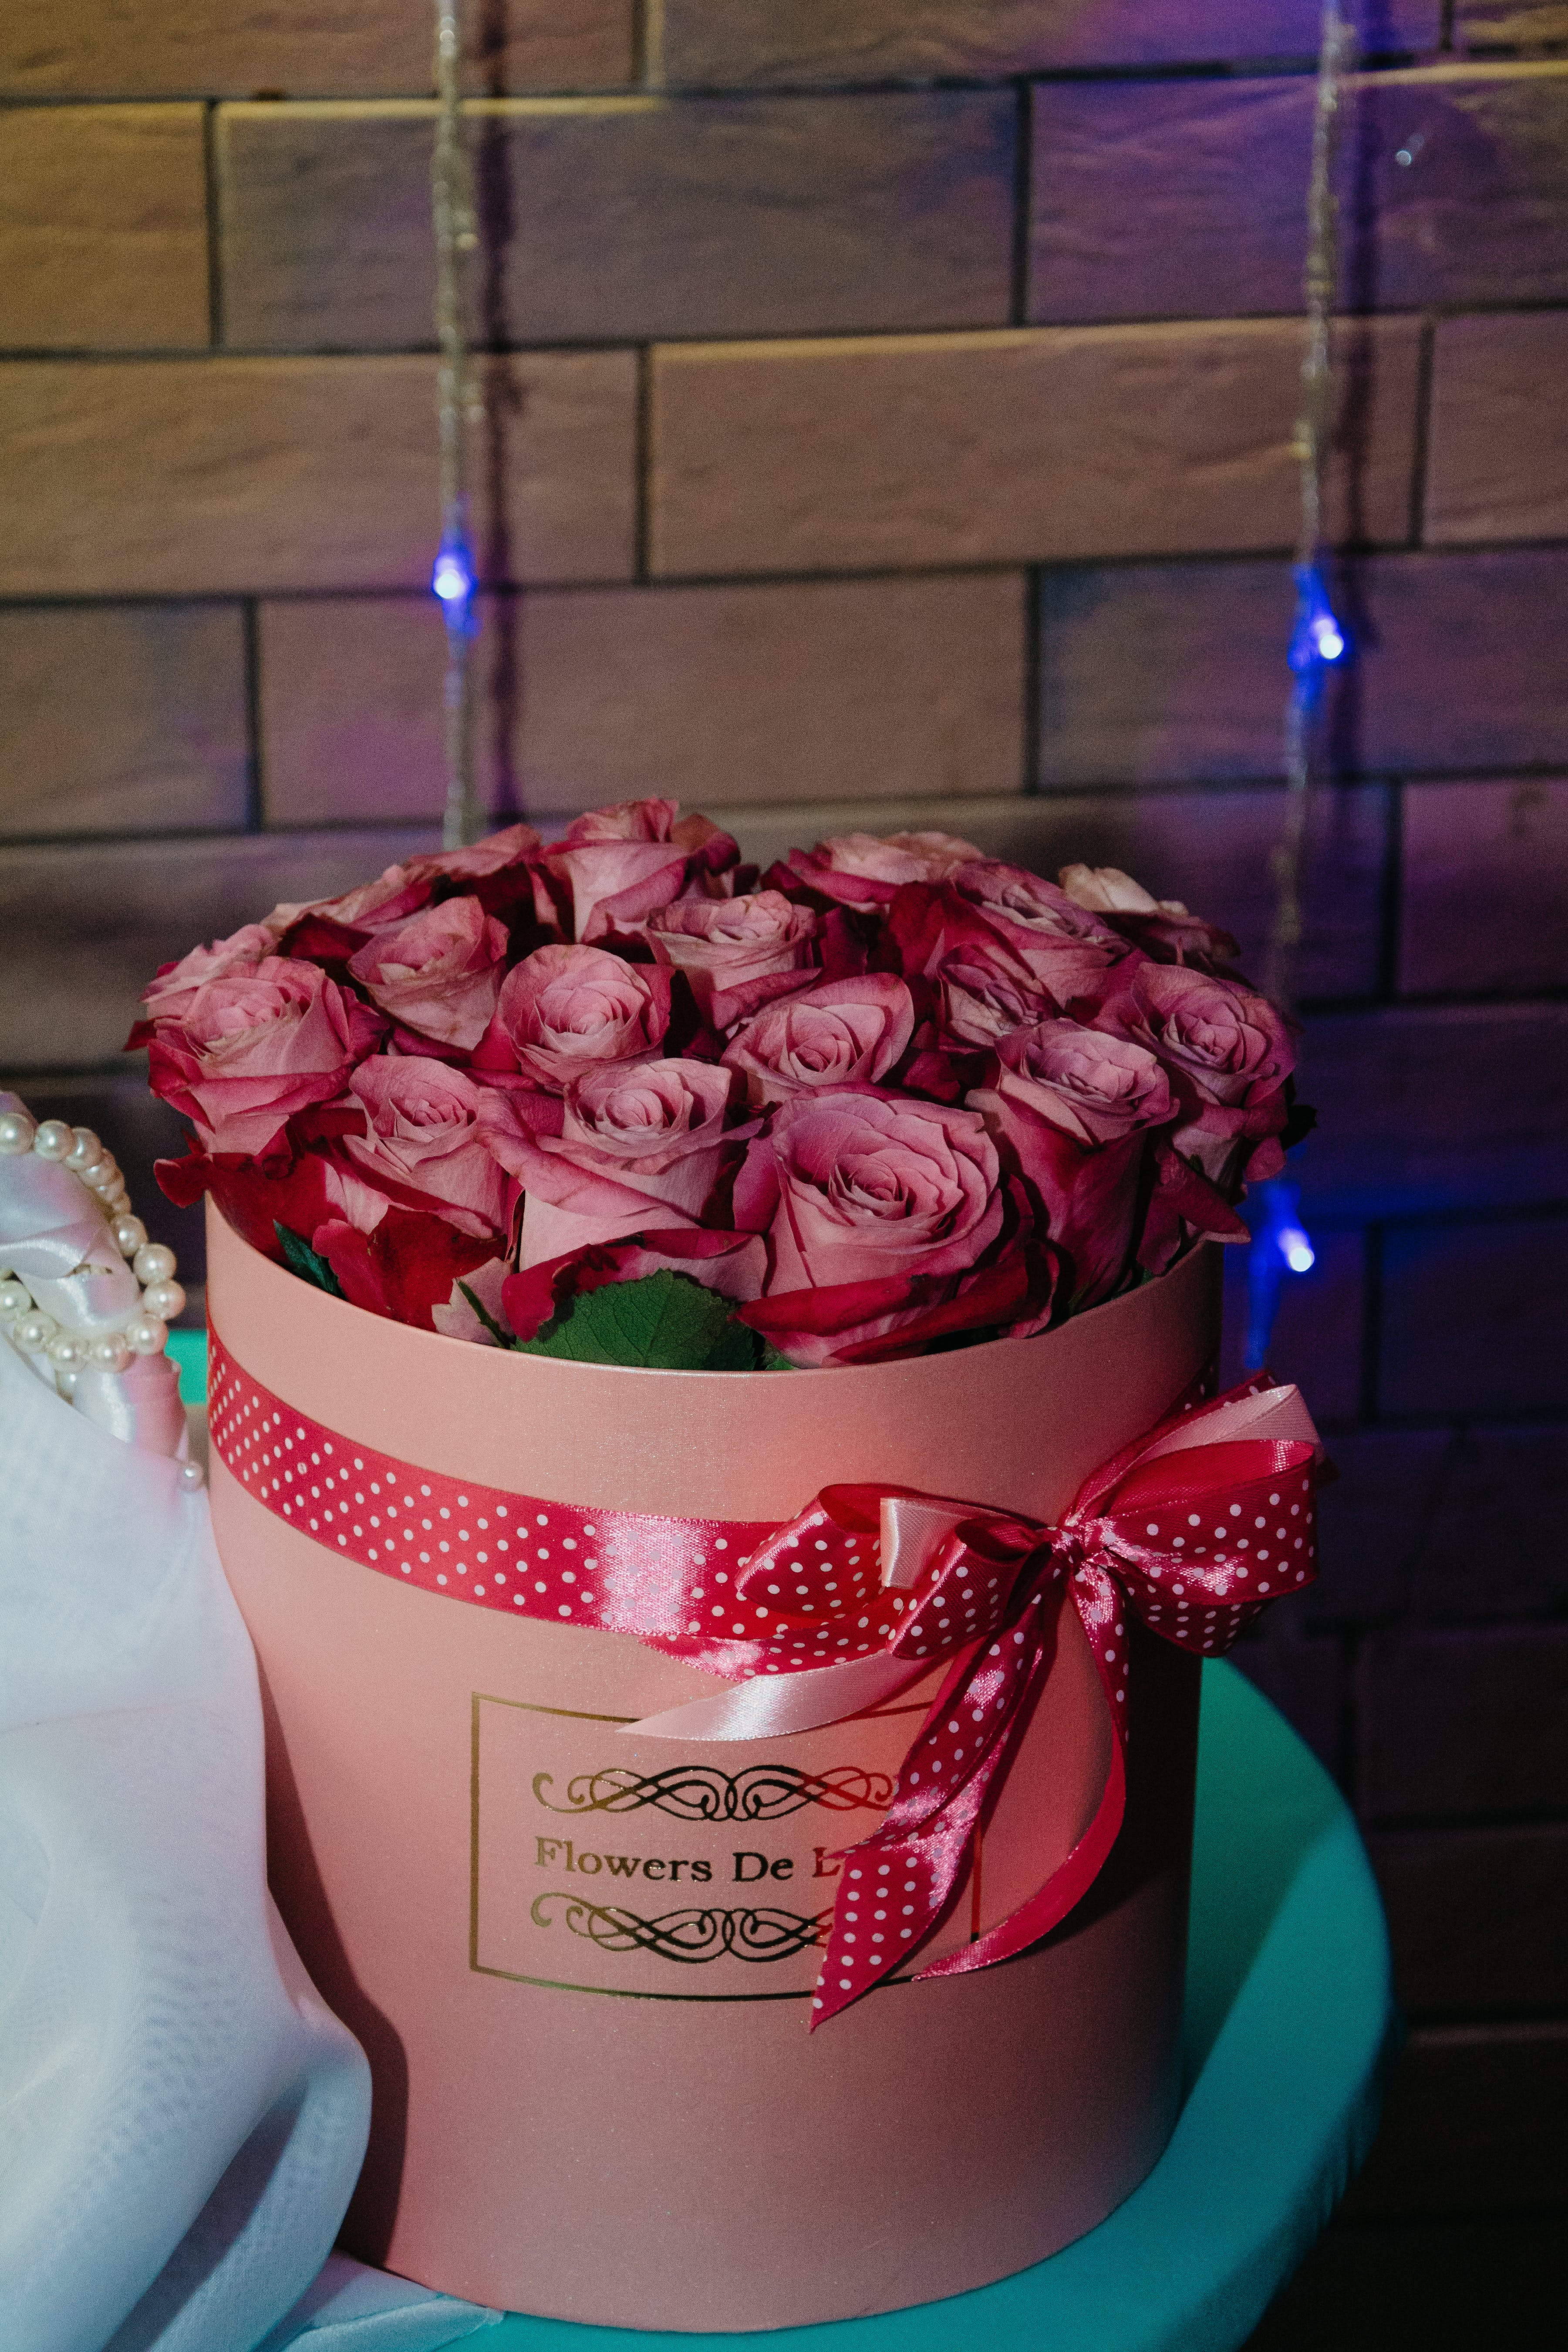 Bouquet of Pink Roses on Round Pink Box